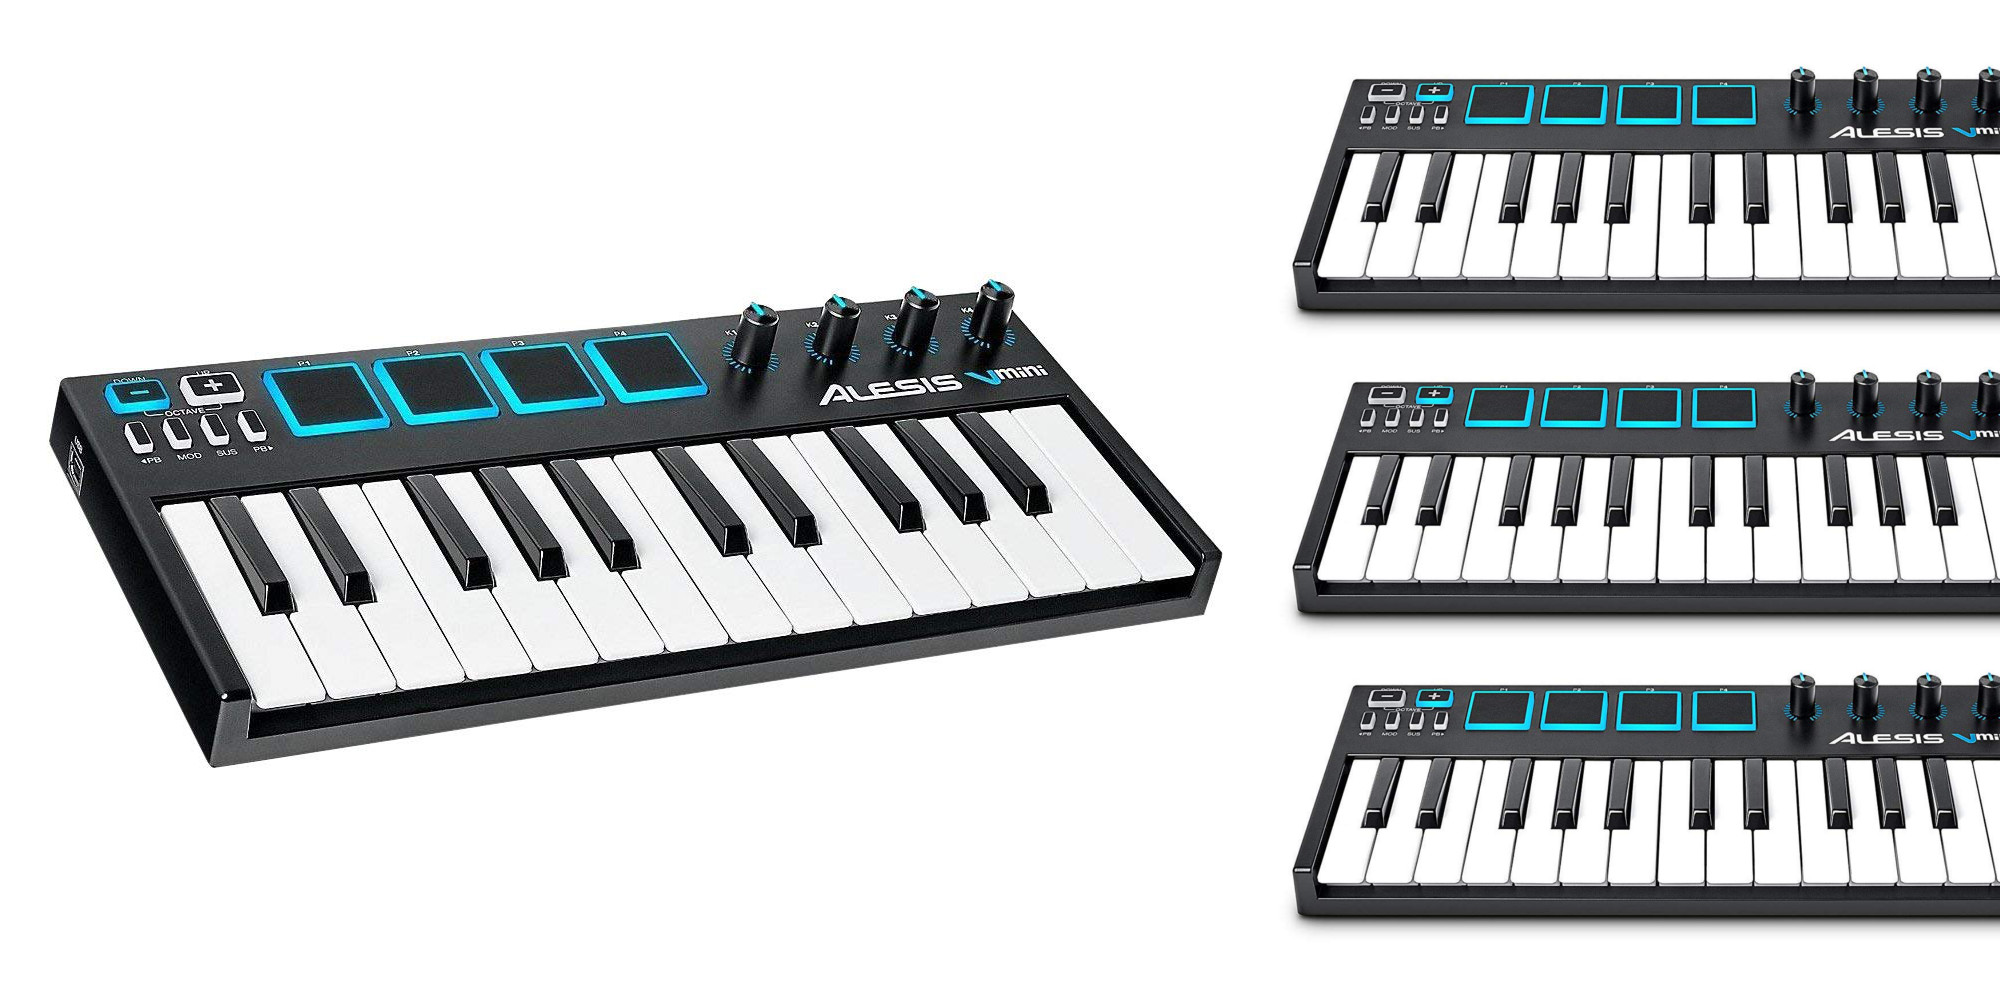 guitar center keyboard sale alesis vmini midi controller 49 much more from 25 9to5toys. Black Bedroom Furniture Sets. Home Design Ideas